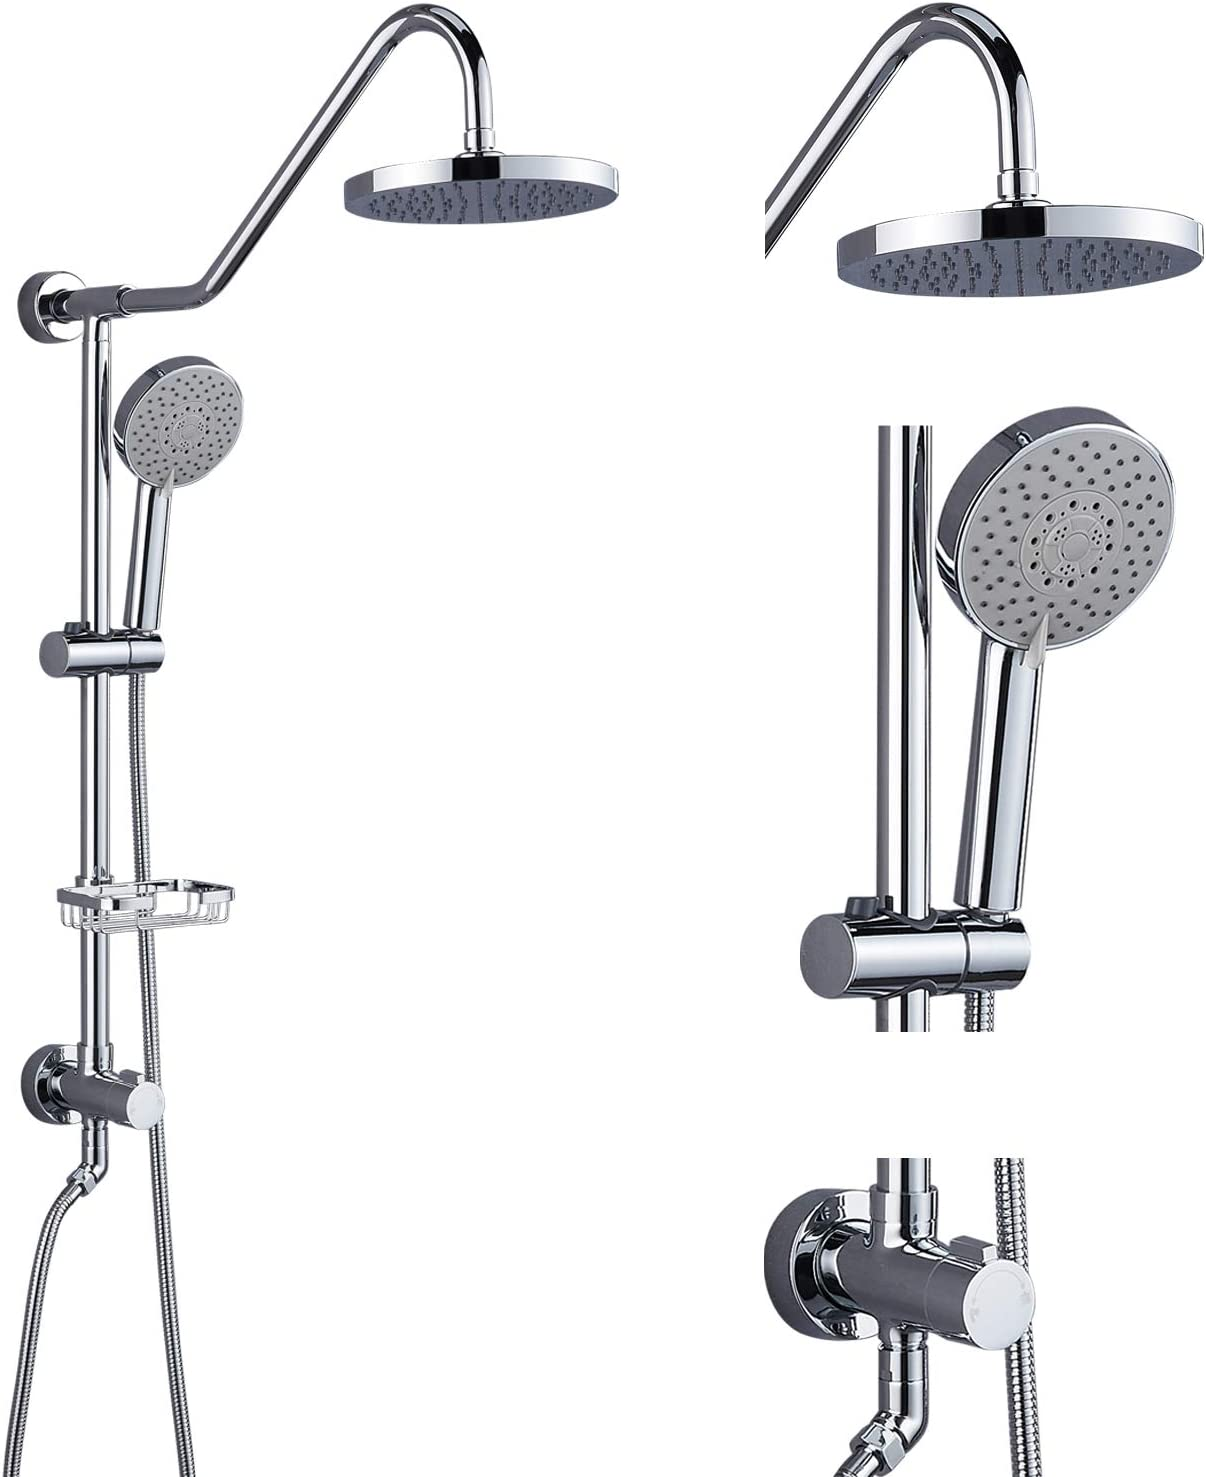 Aolemi Polish SEAL limited product Recommended Chrome Retrofit Shower System Inch 8 Rain H